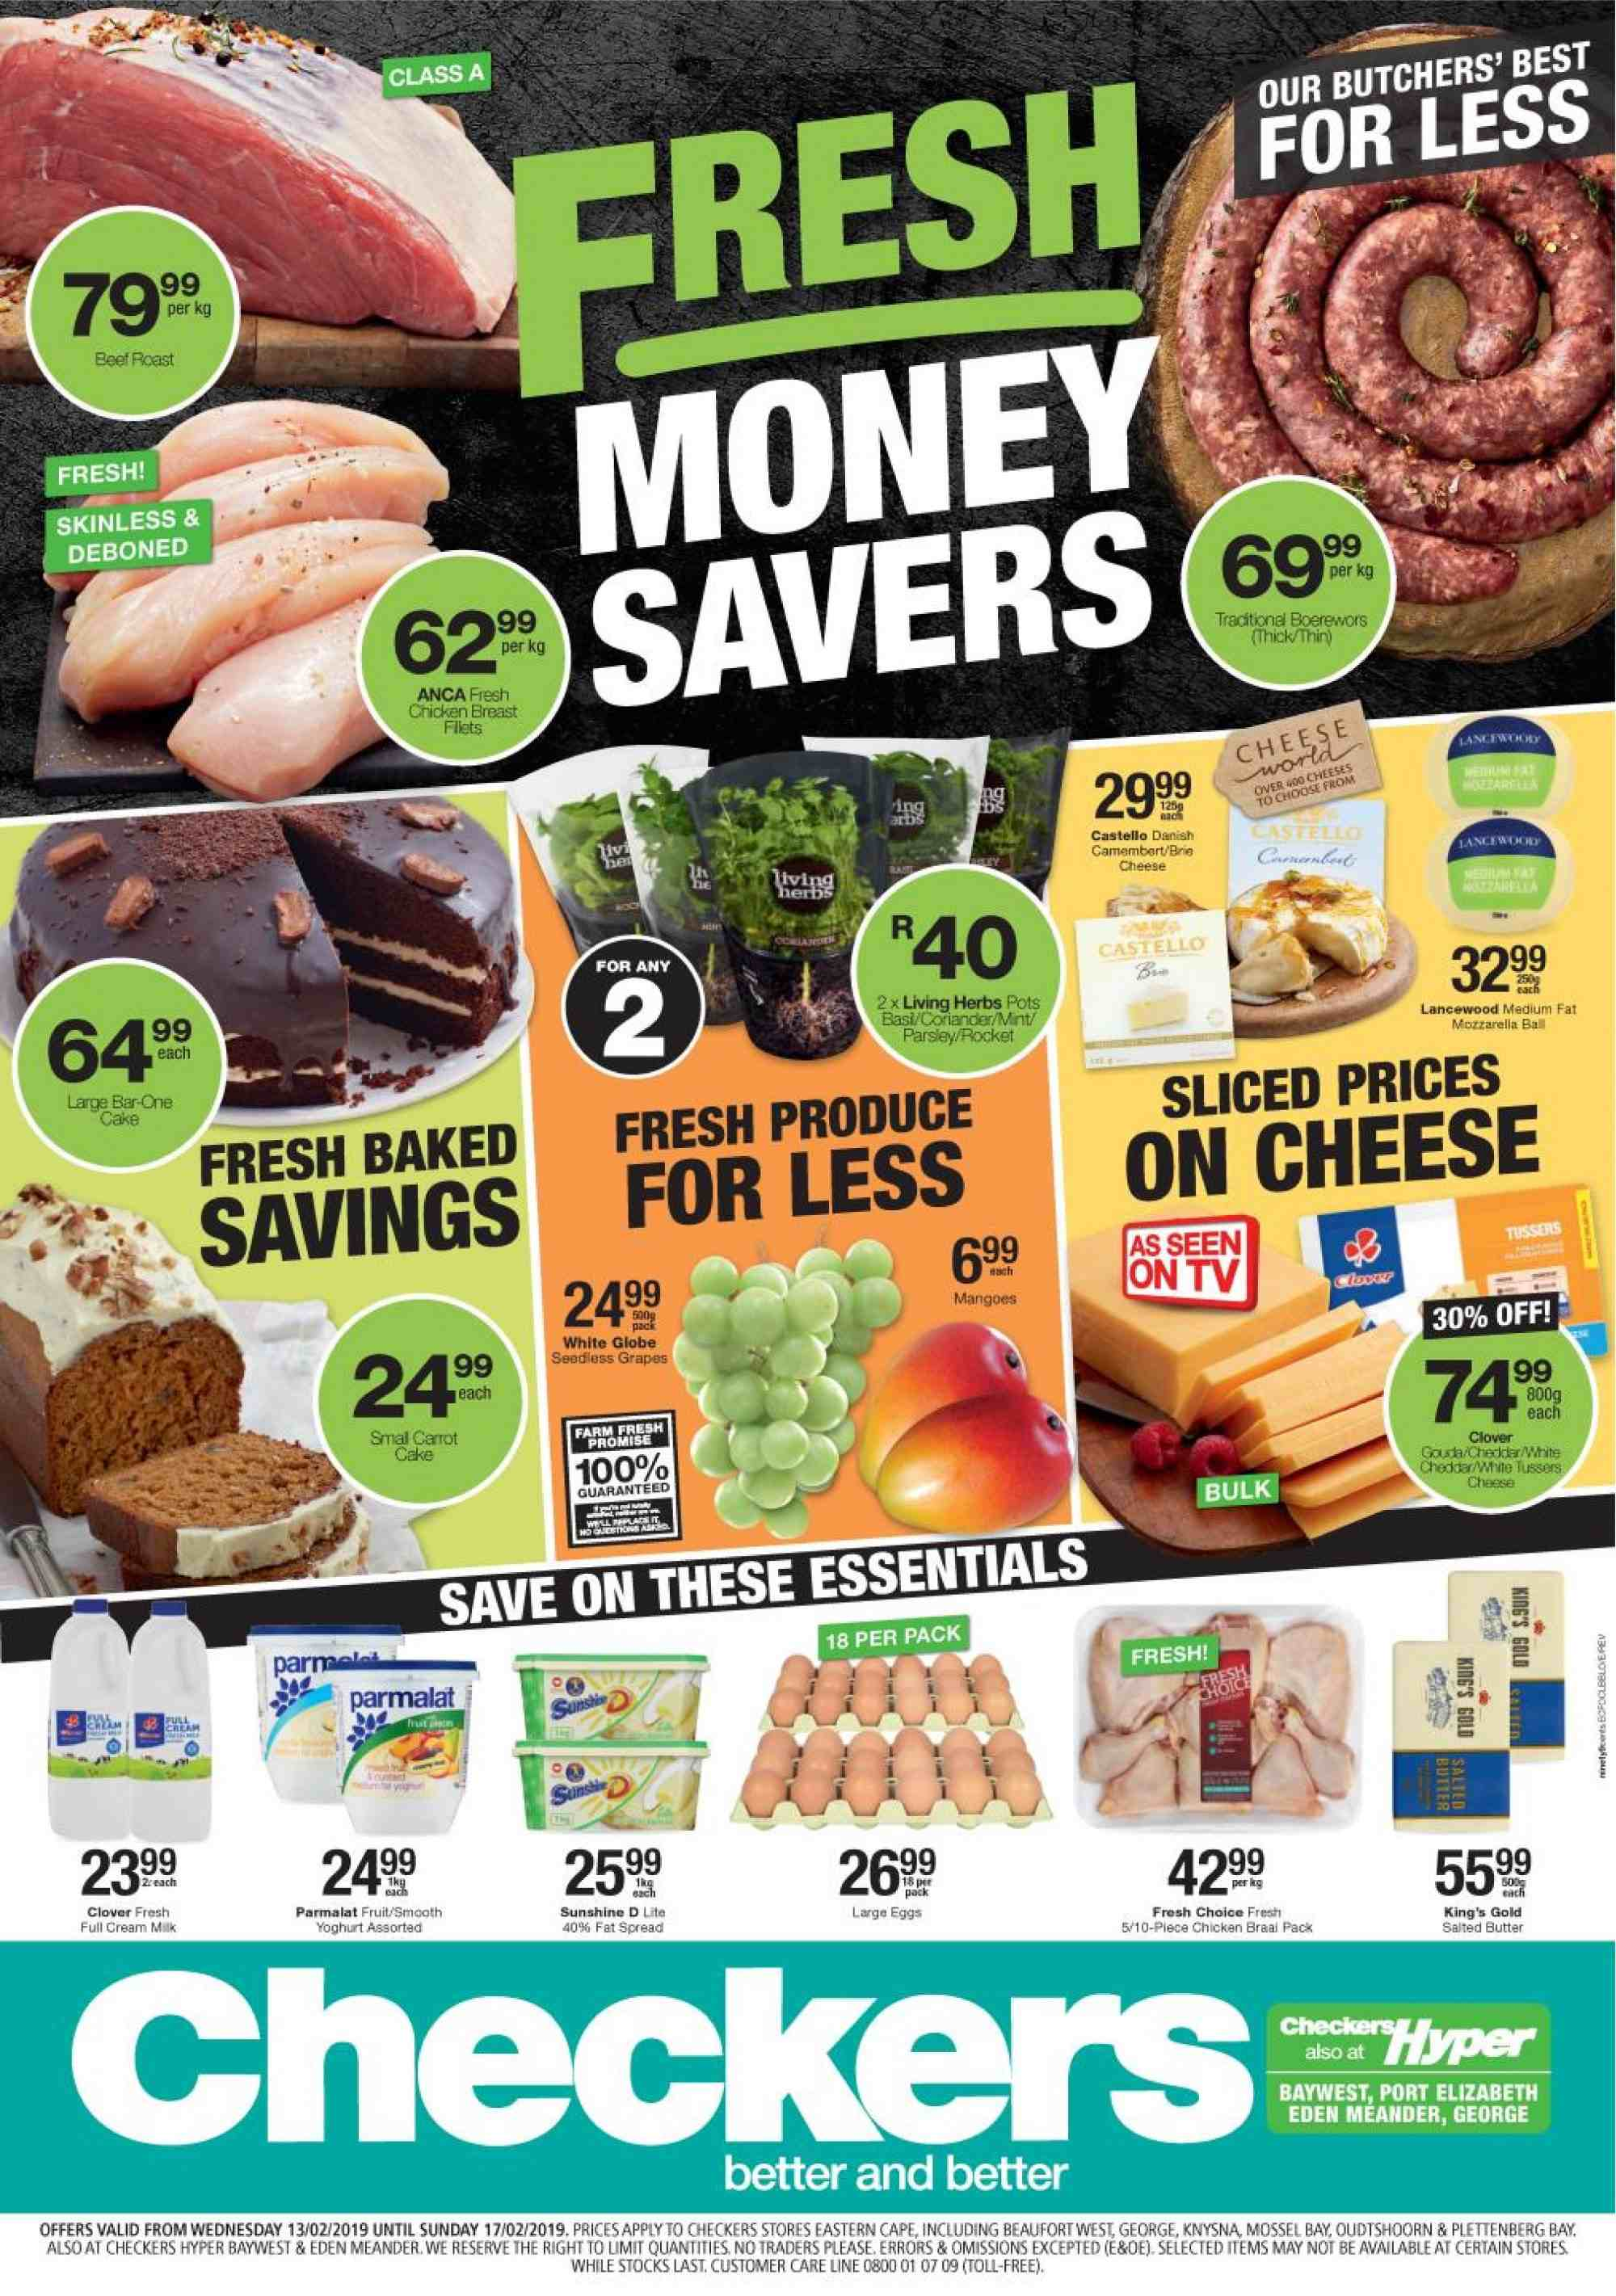 Checkers special - 02.13.2019 - 02.17.2019 - Sales products - butter, cream, gouda, milk, mint, mozzarella, rocket, chicken, parsley, yoghurt, herbs, cheese, cake. Page 1.